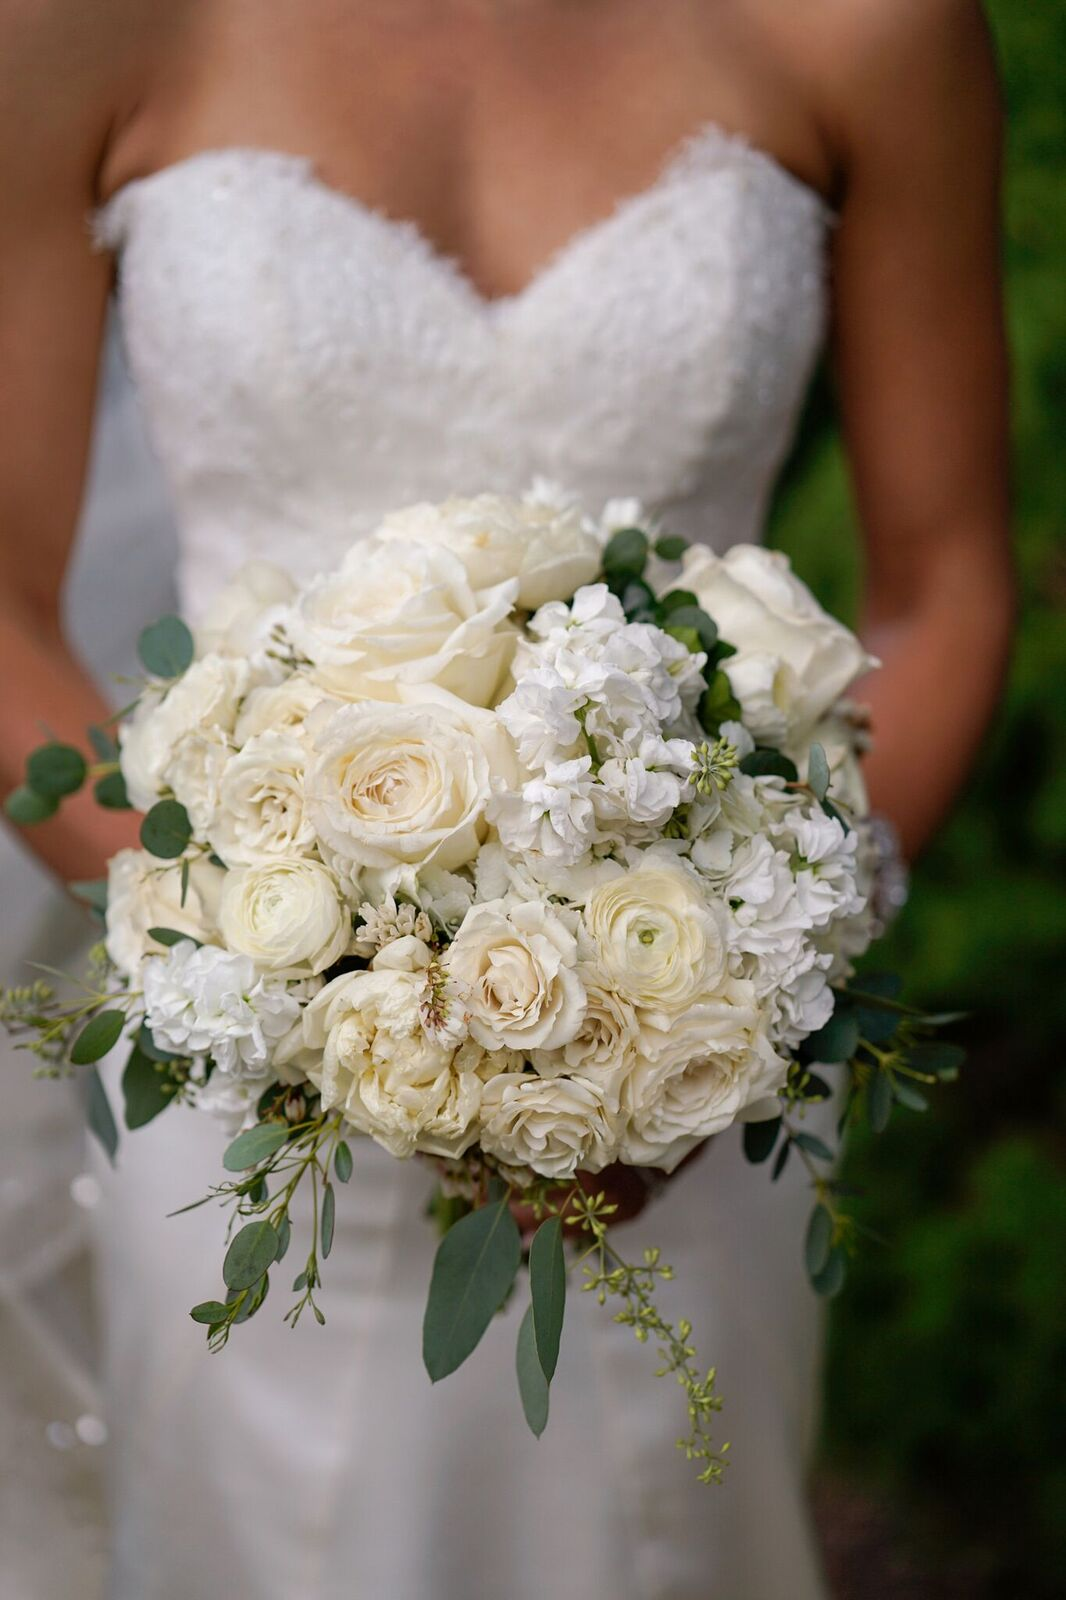 An all white chic bridal bouquet was the perfect look for our gorgeous bride at her garden wedding. Read the blog to see all the details of this amazing Princeton wedding day we planned!